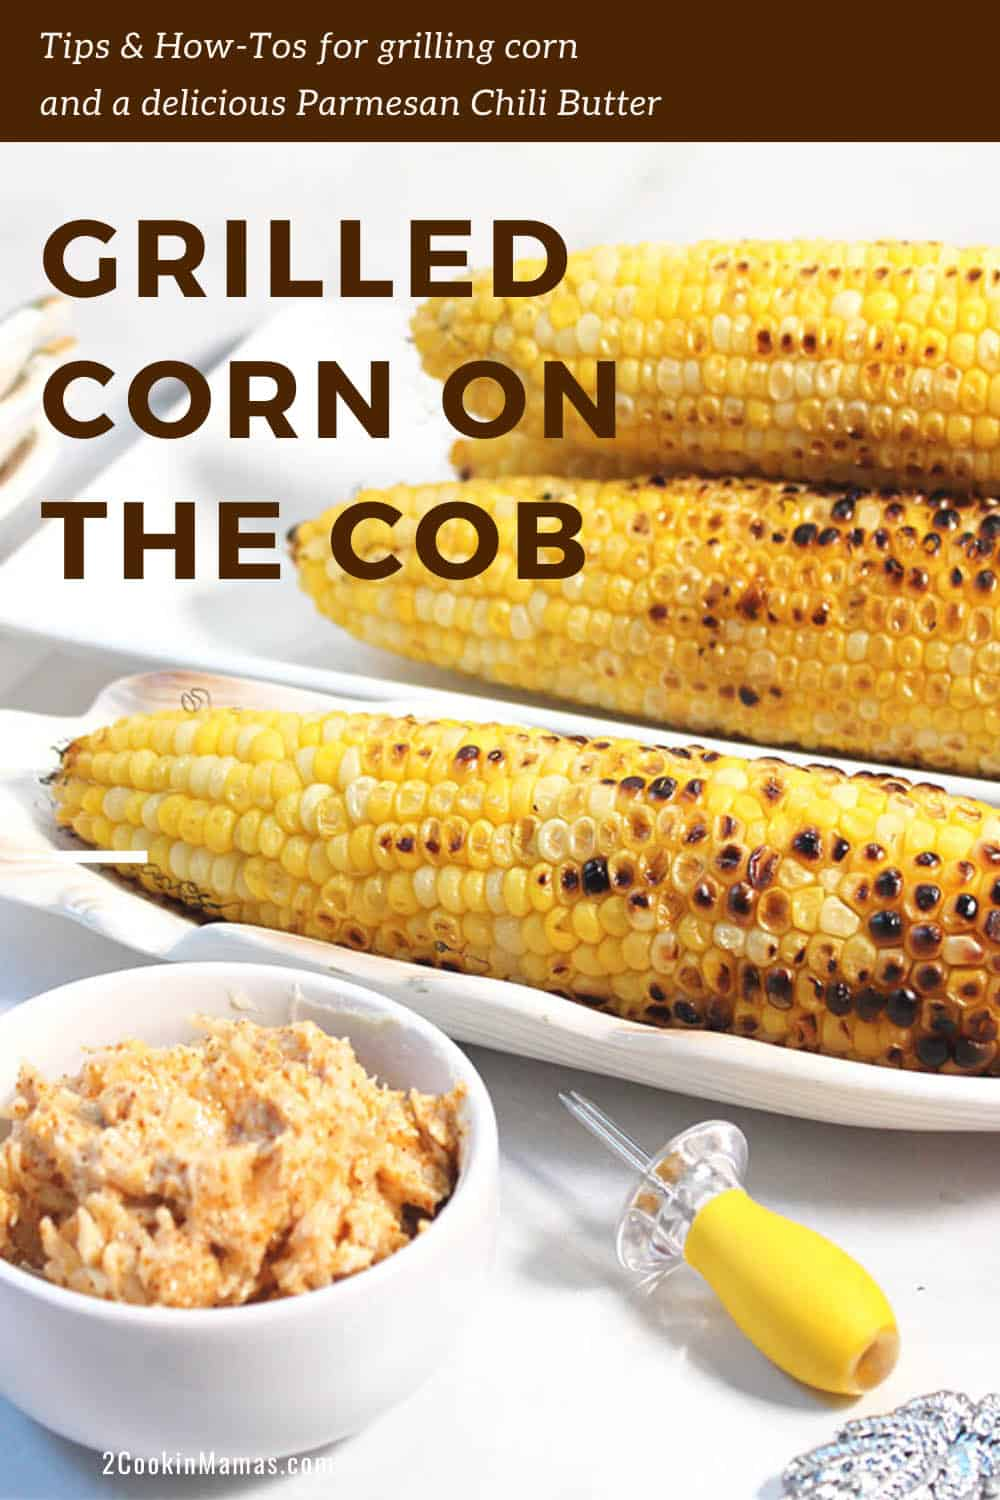 Grilled Corn on the Cob with Parmesan Chili Butter